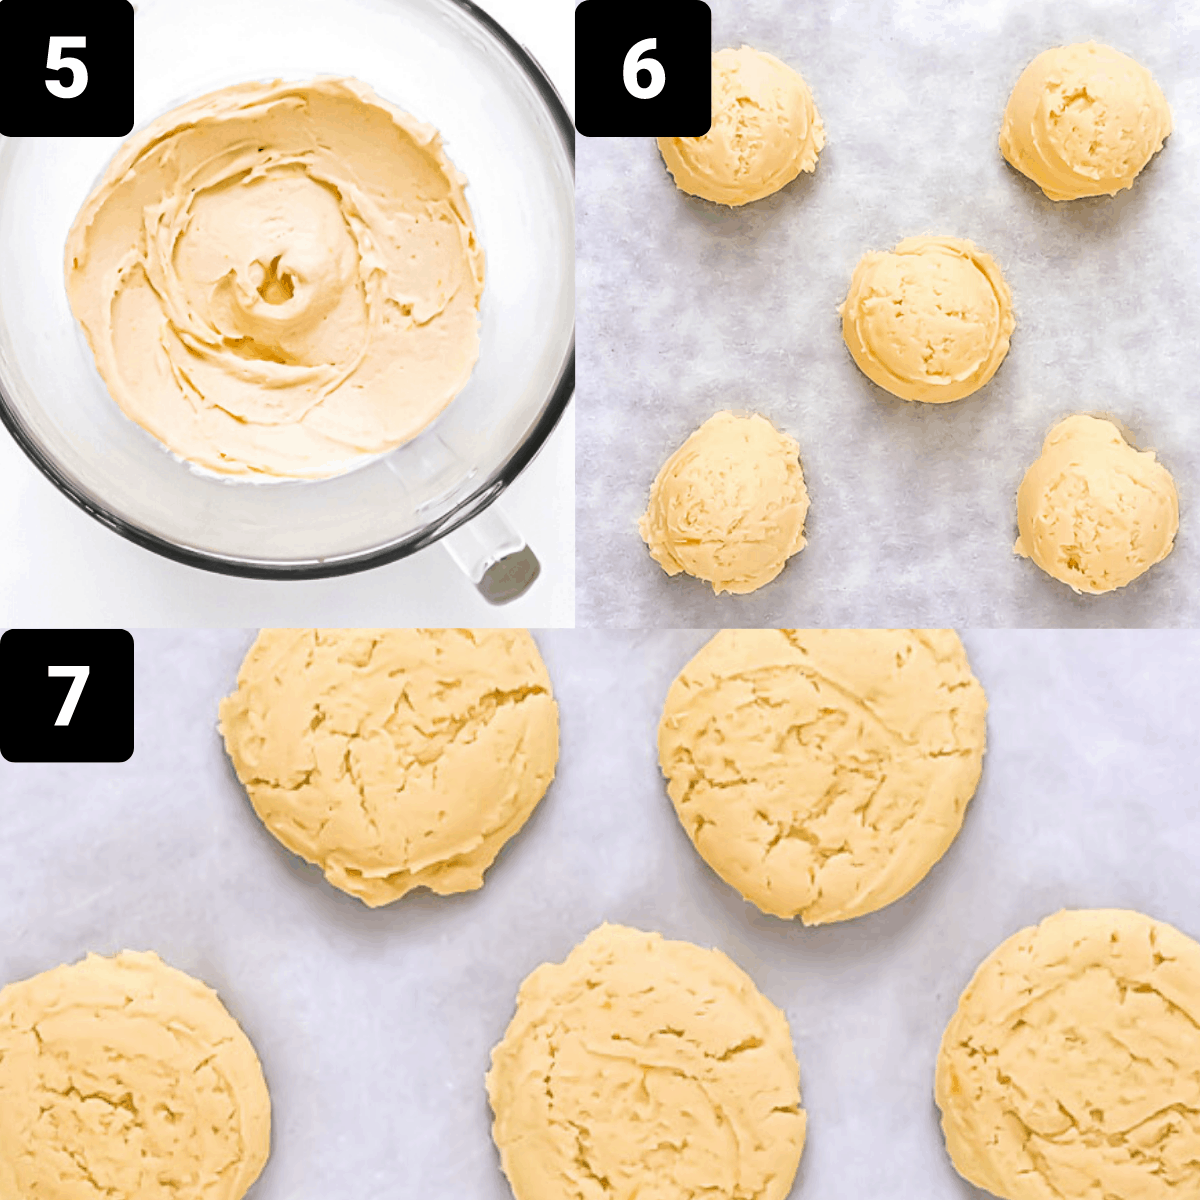 Step by step to make cookies: mix everything, form dough balls, bake.